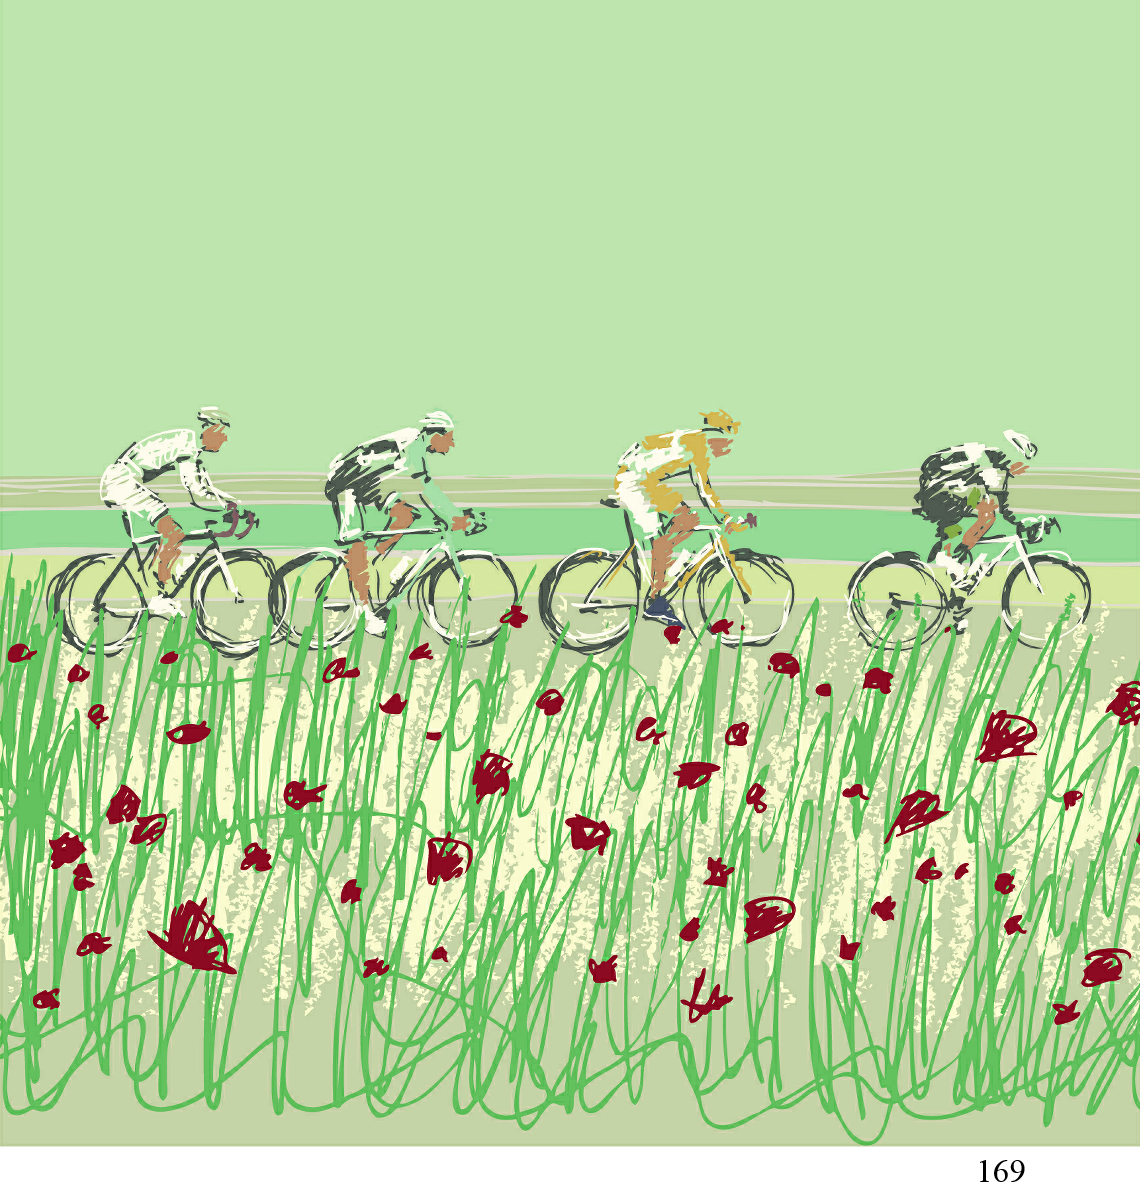 169 peleton 9 james lord arty cards 6x6.jpg